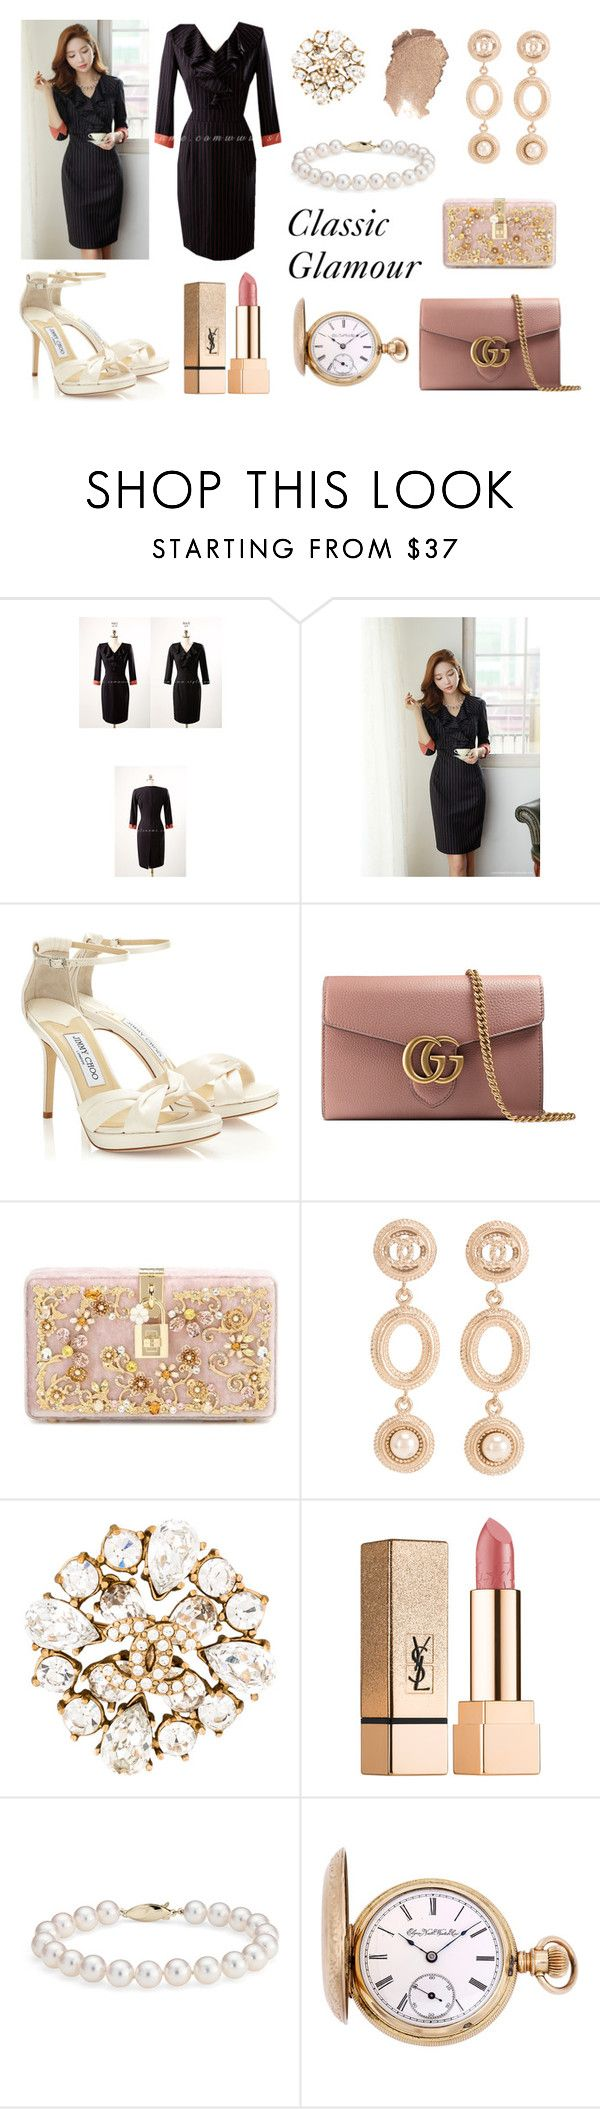 Styleonme_Slim Fit Button Detail PantsPinstripe Ruffle V-Neck Fitted Dress by styleonme-kr on Polyvore featuring Dolce&Gabbana, Gucci, Elgin, Chanel, Blue Nile and Yves Saint Laurent